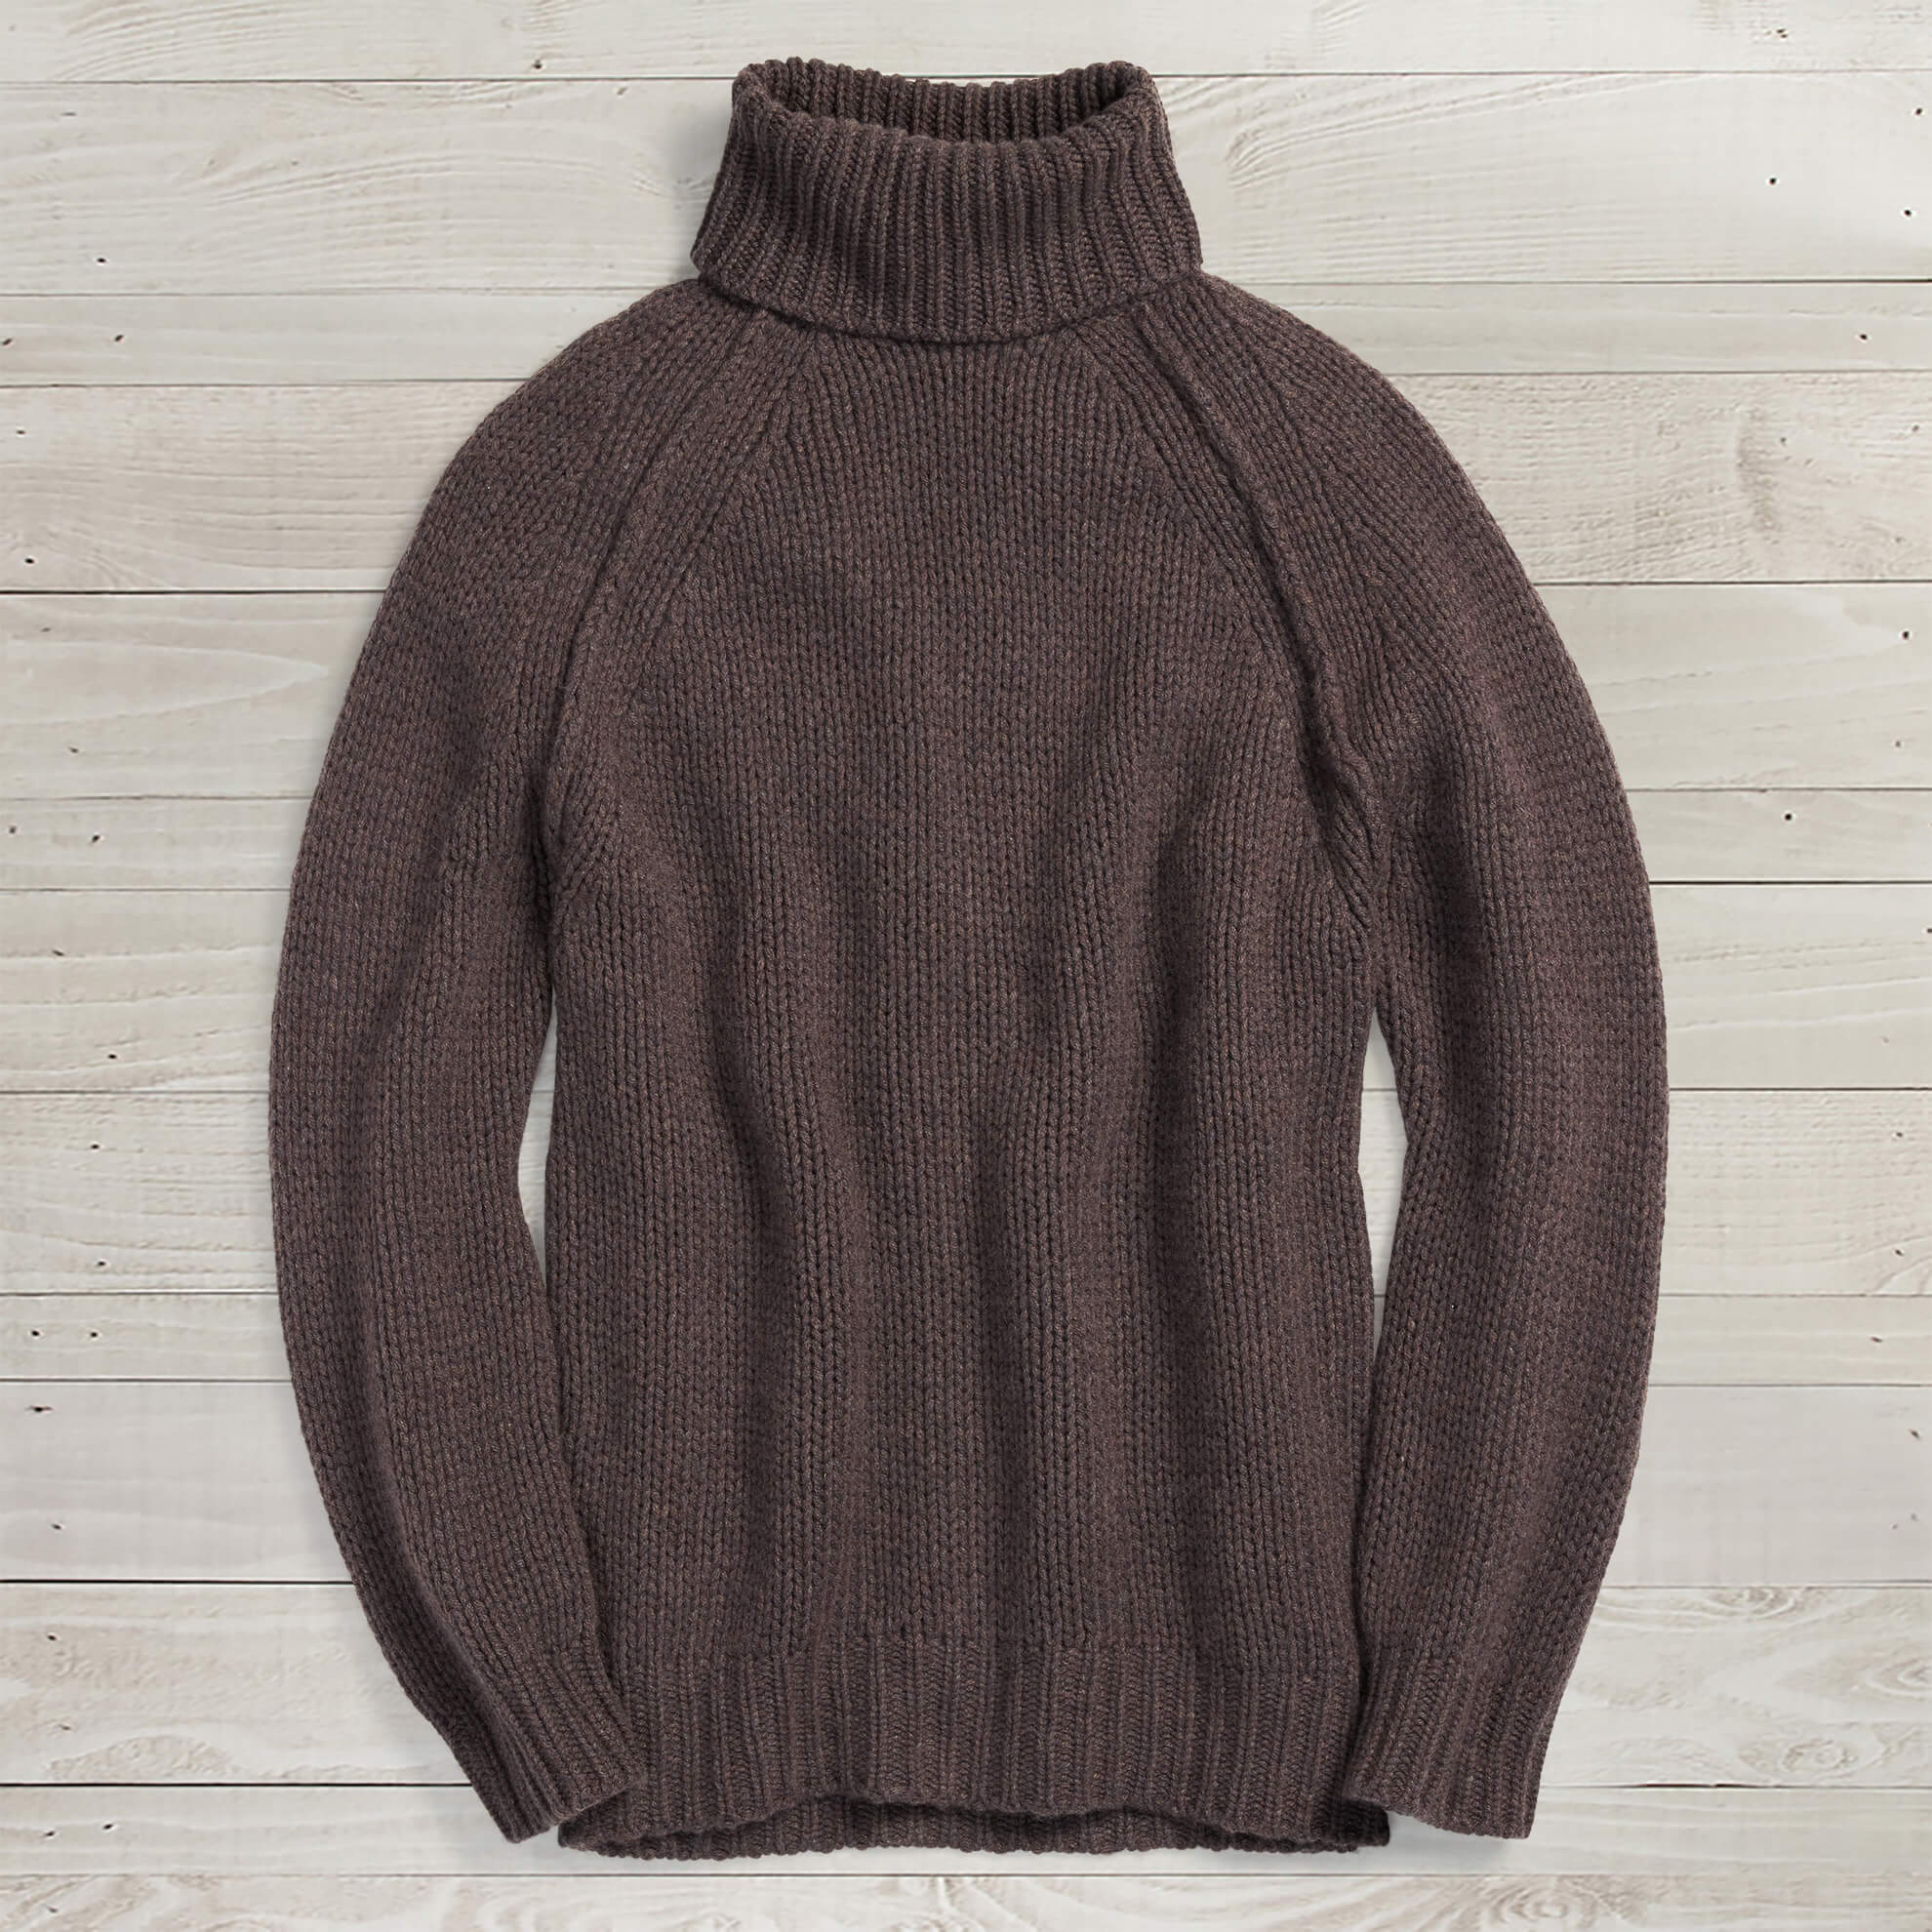 Bryn Mawr Polo-Neck Sweater